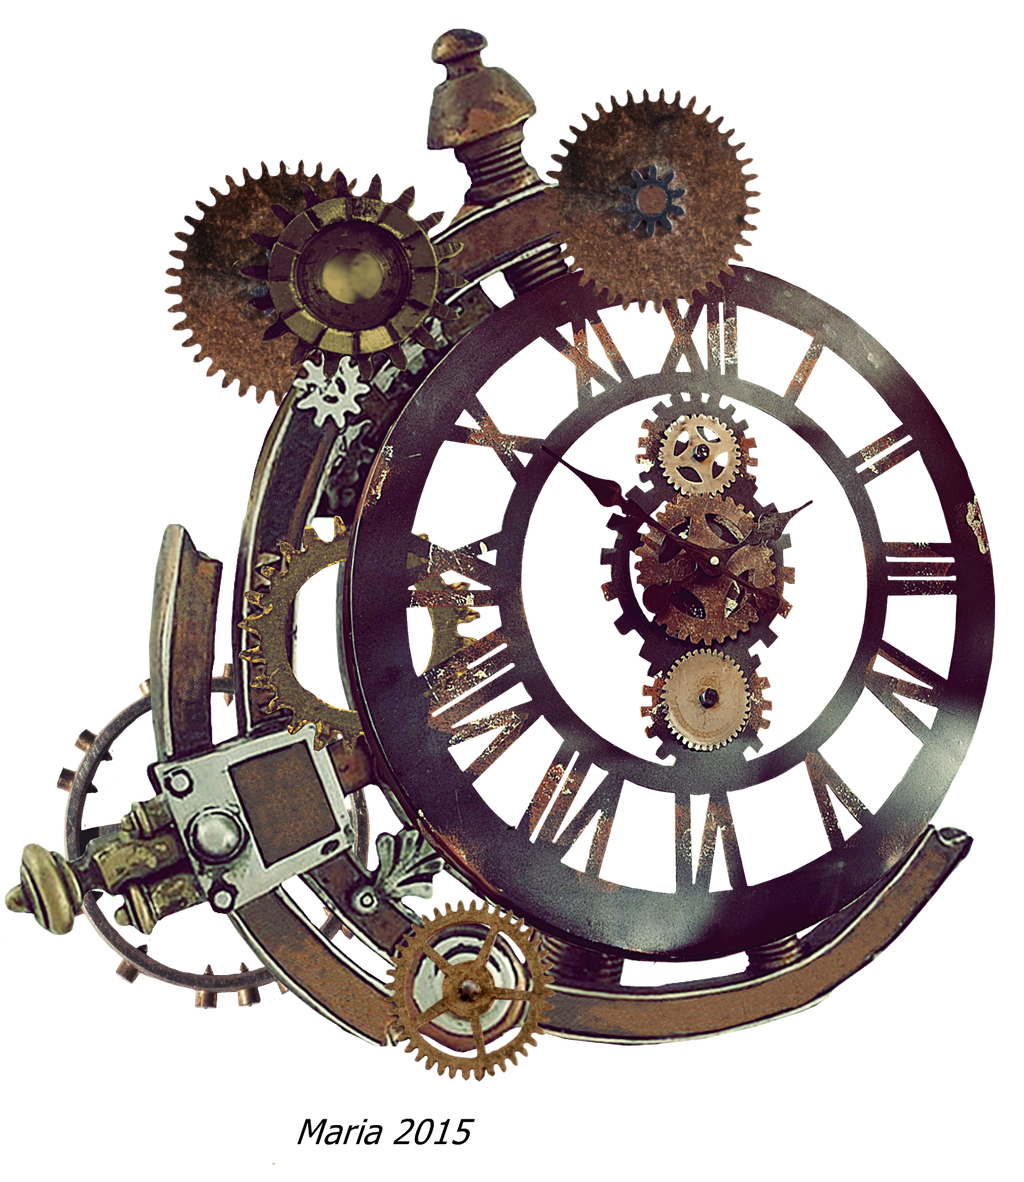 Steampunk Clock Stock Photo by MariaRaute2